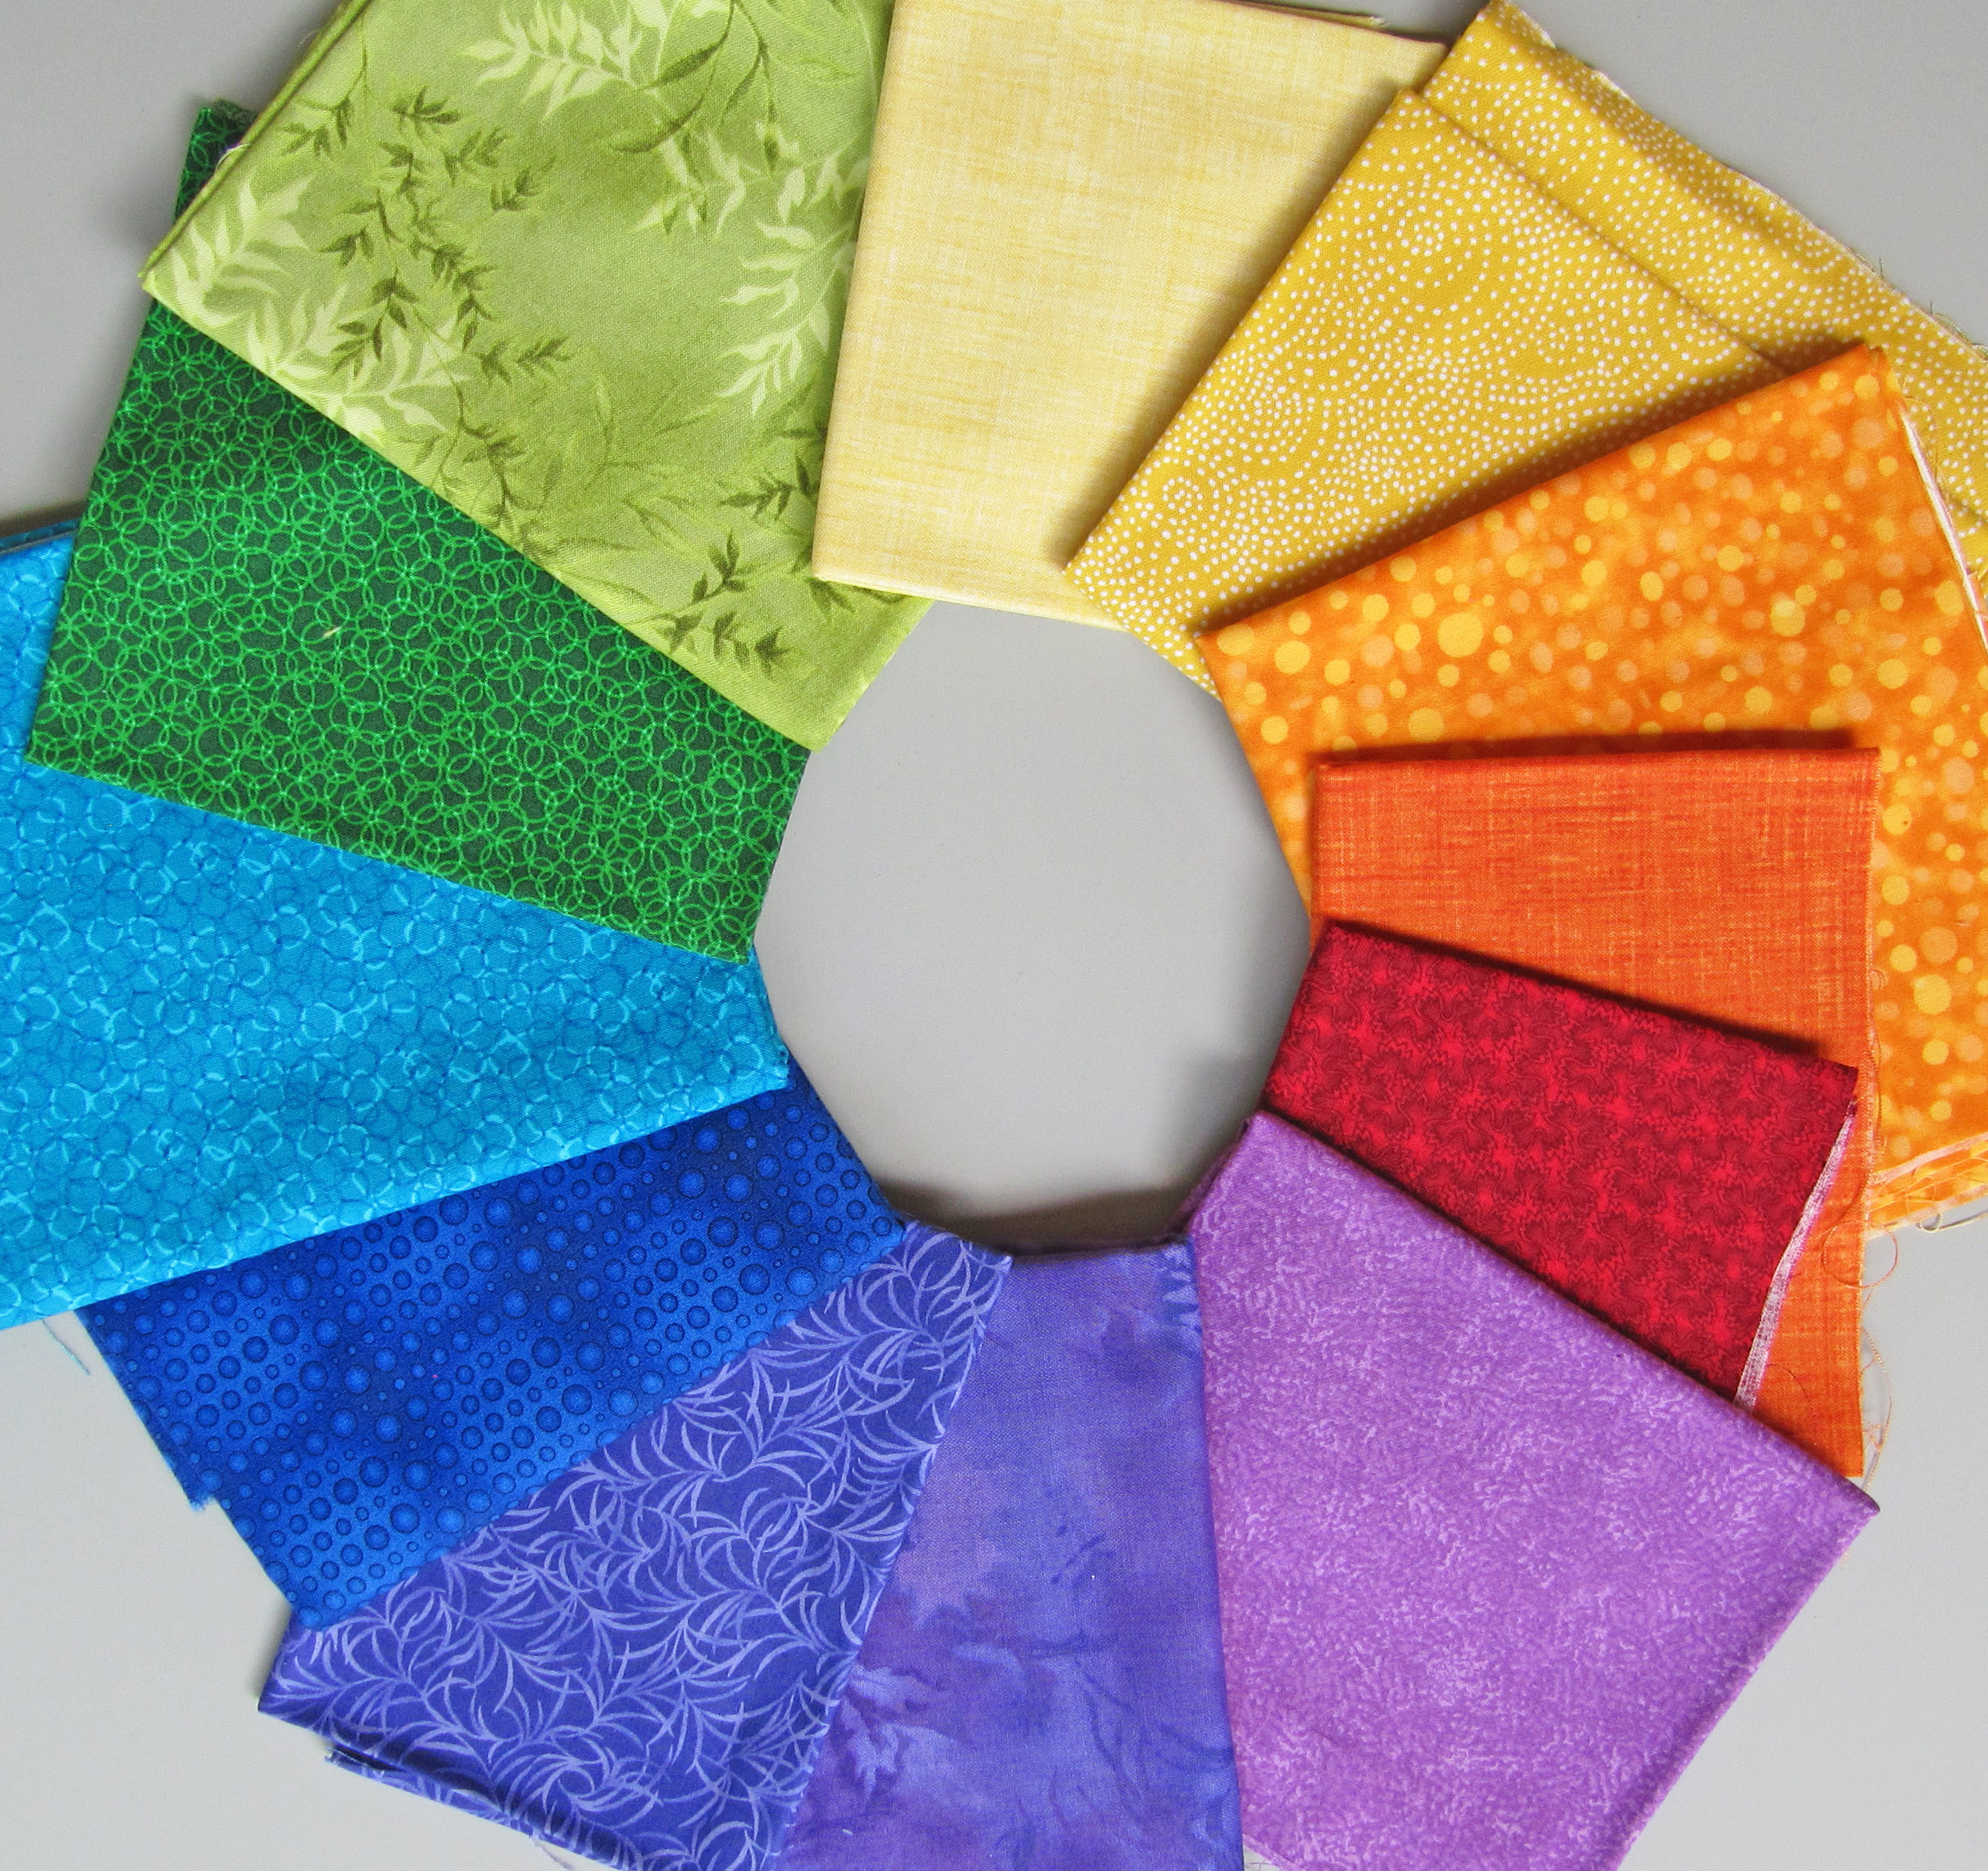 Nancy S Quilting Classroom Choosing Colors For Quilt Patterns Fons Porter Quilting Daily